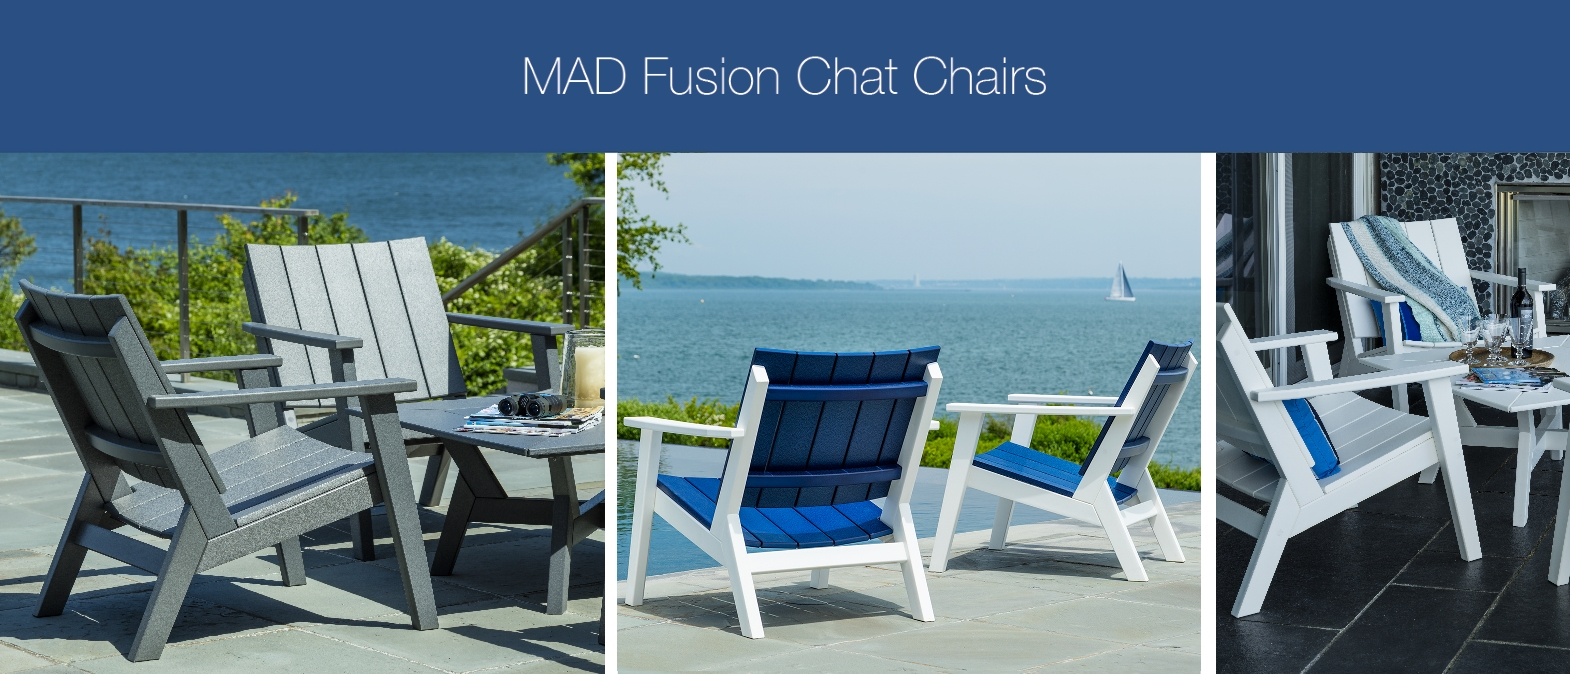 seaside casual NEW 2017 mad fusion chat chair collection